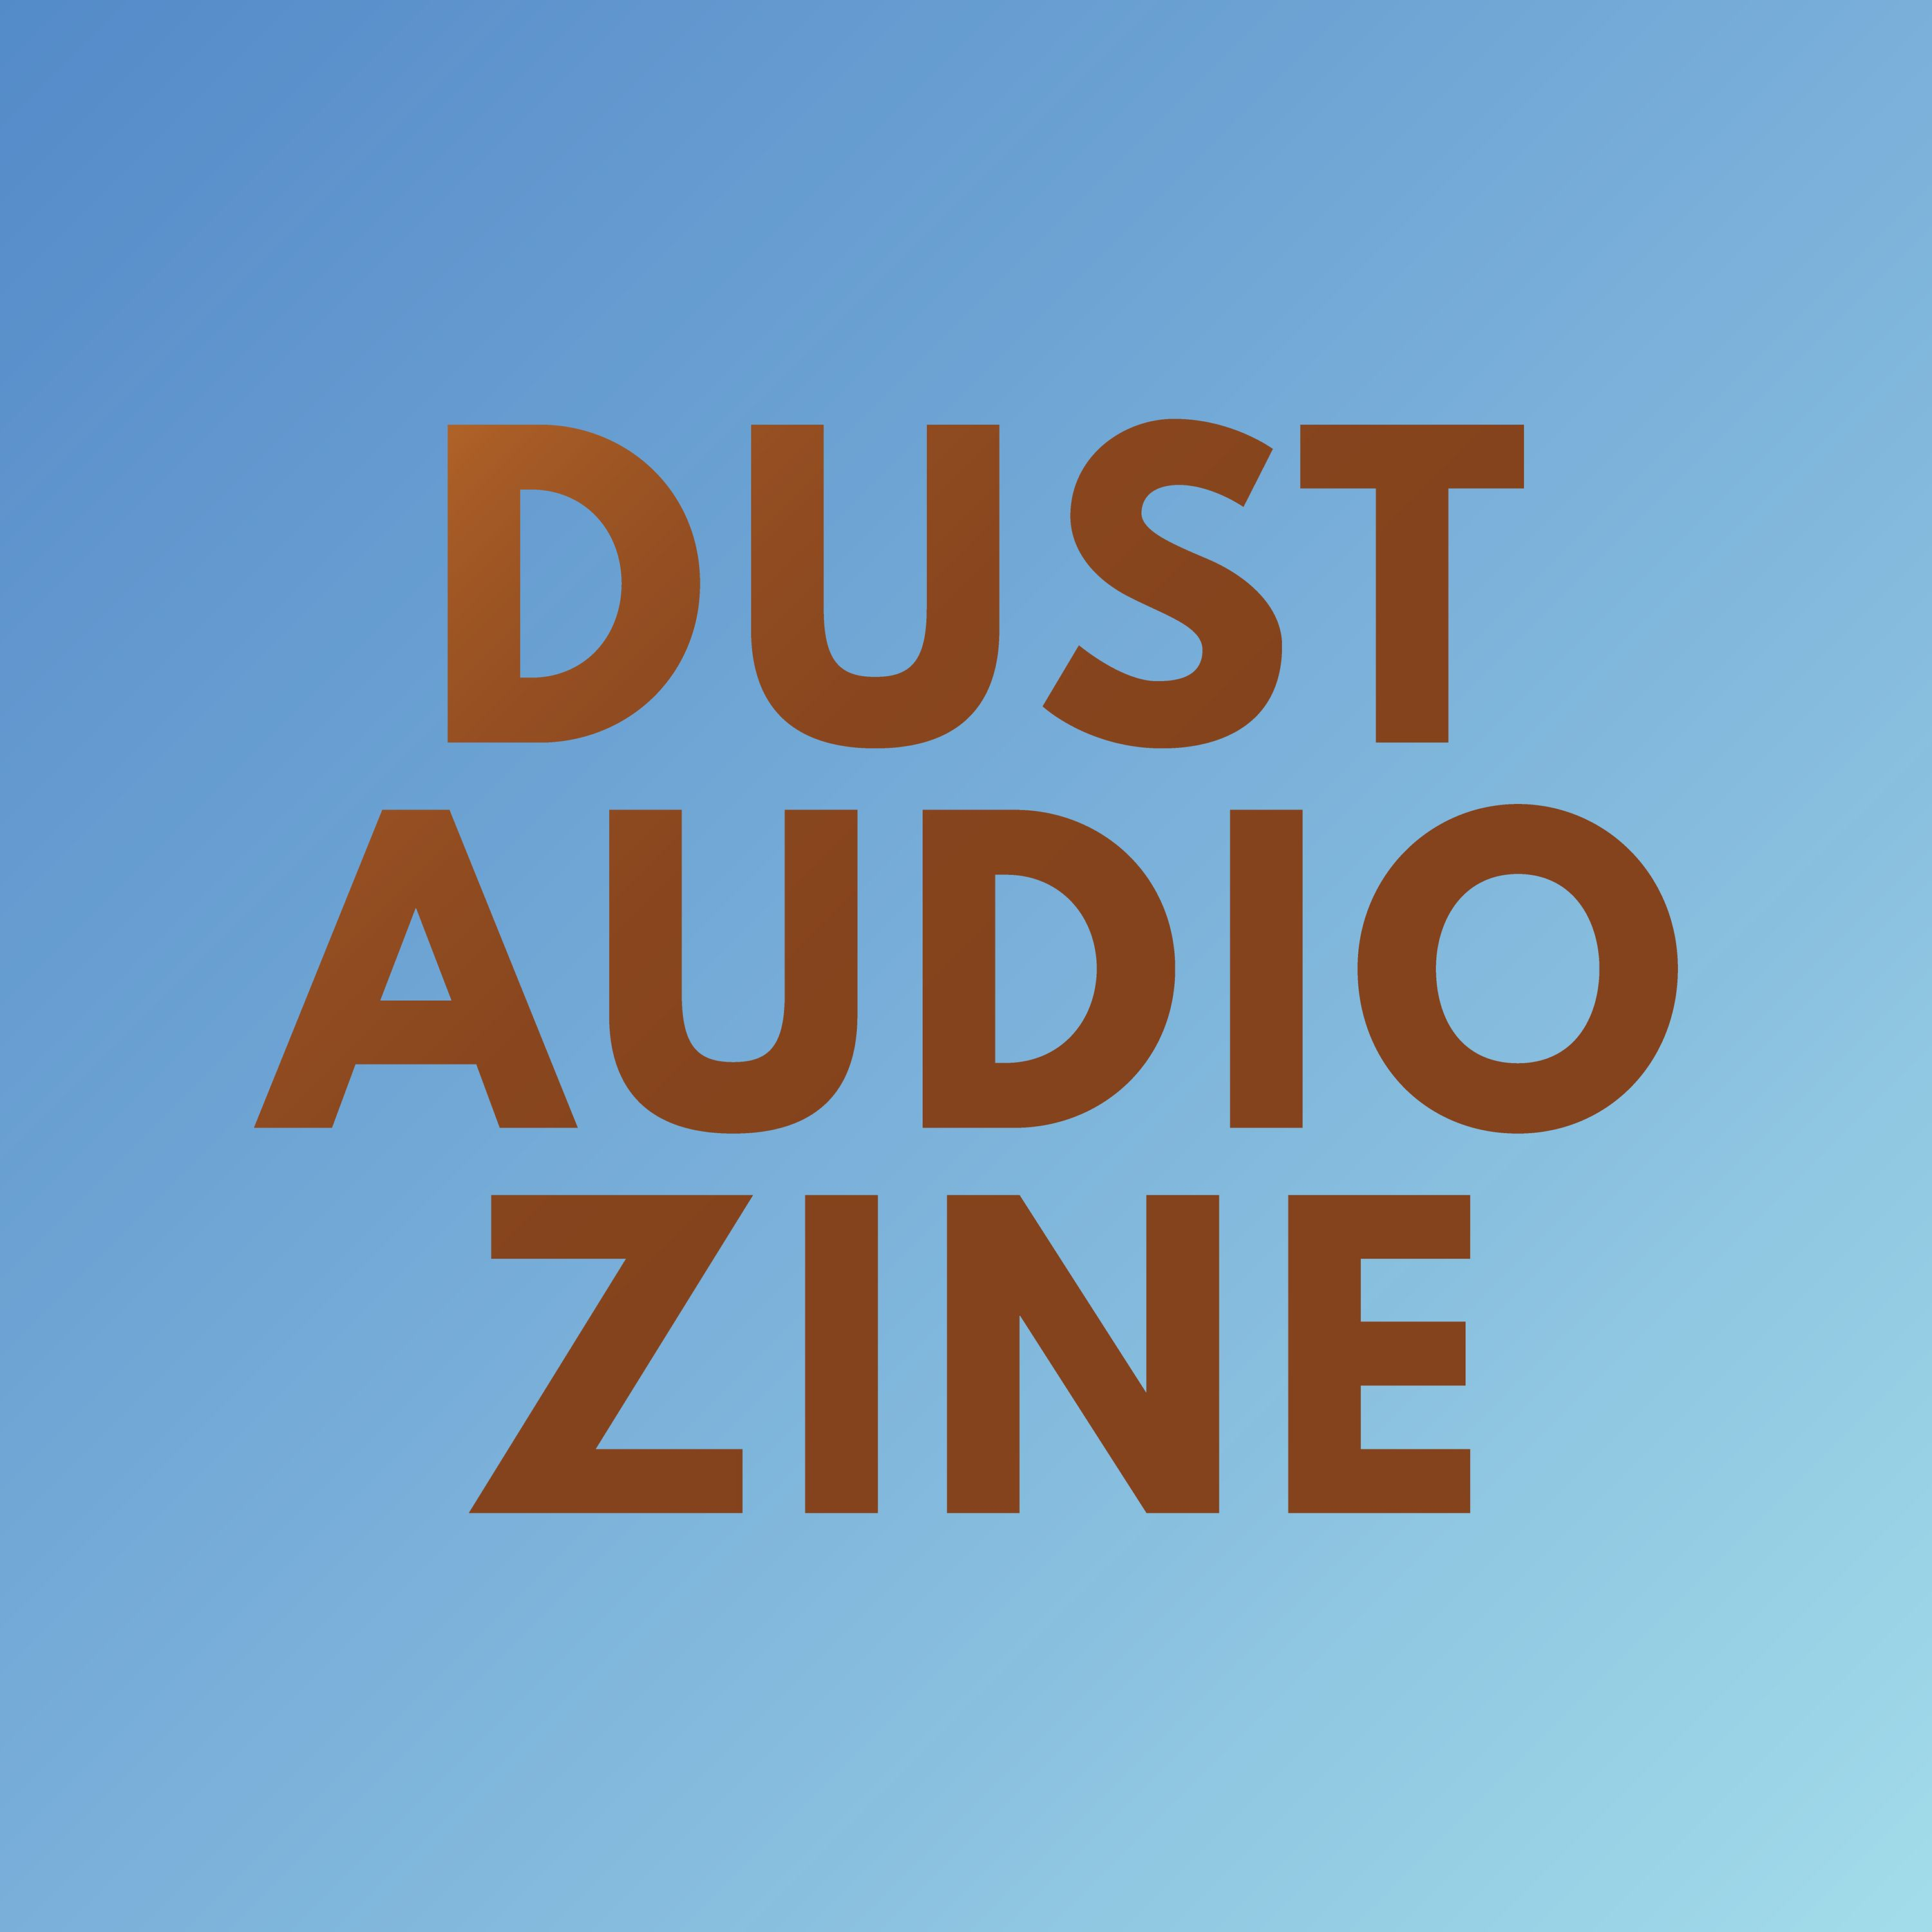 Dust Audio Zine